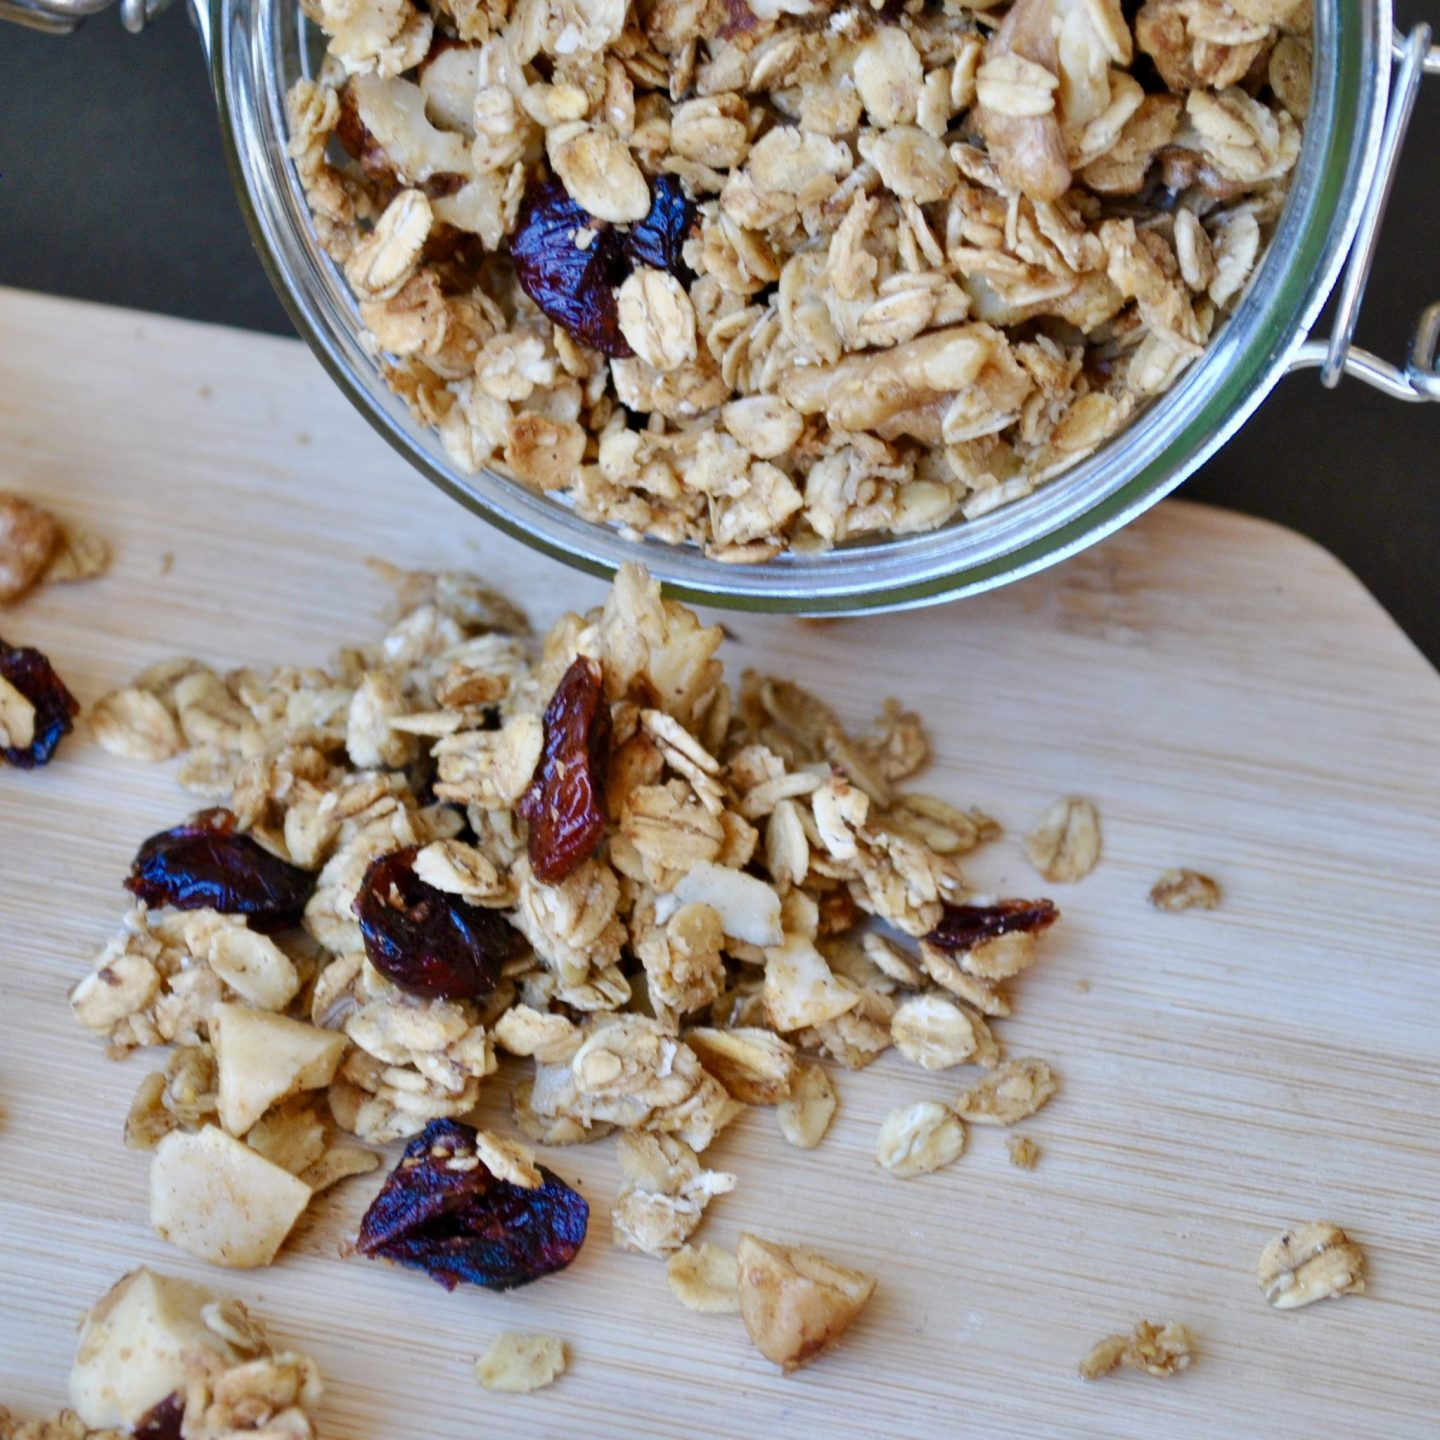 Cranberry Christmas-Spiced Granola